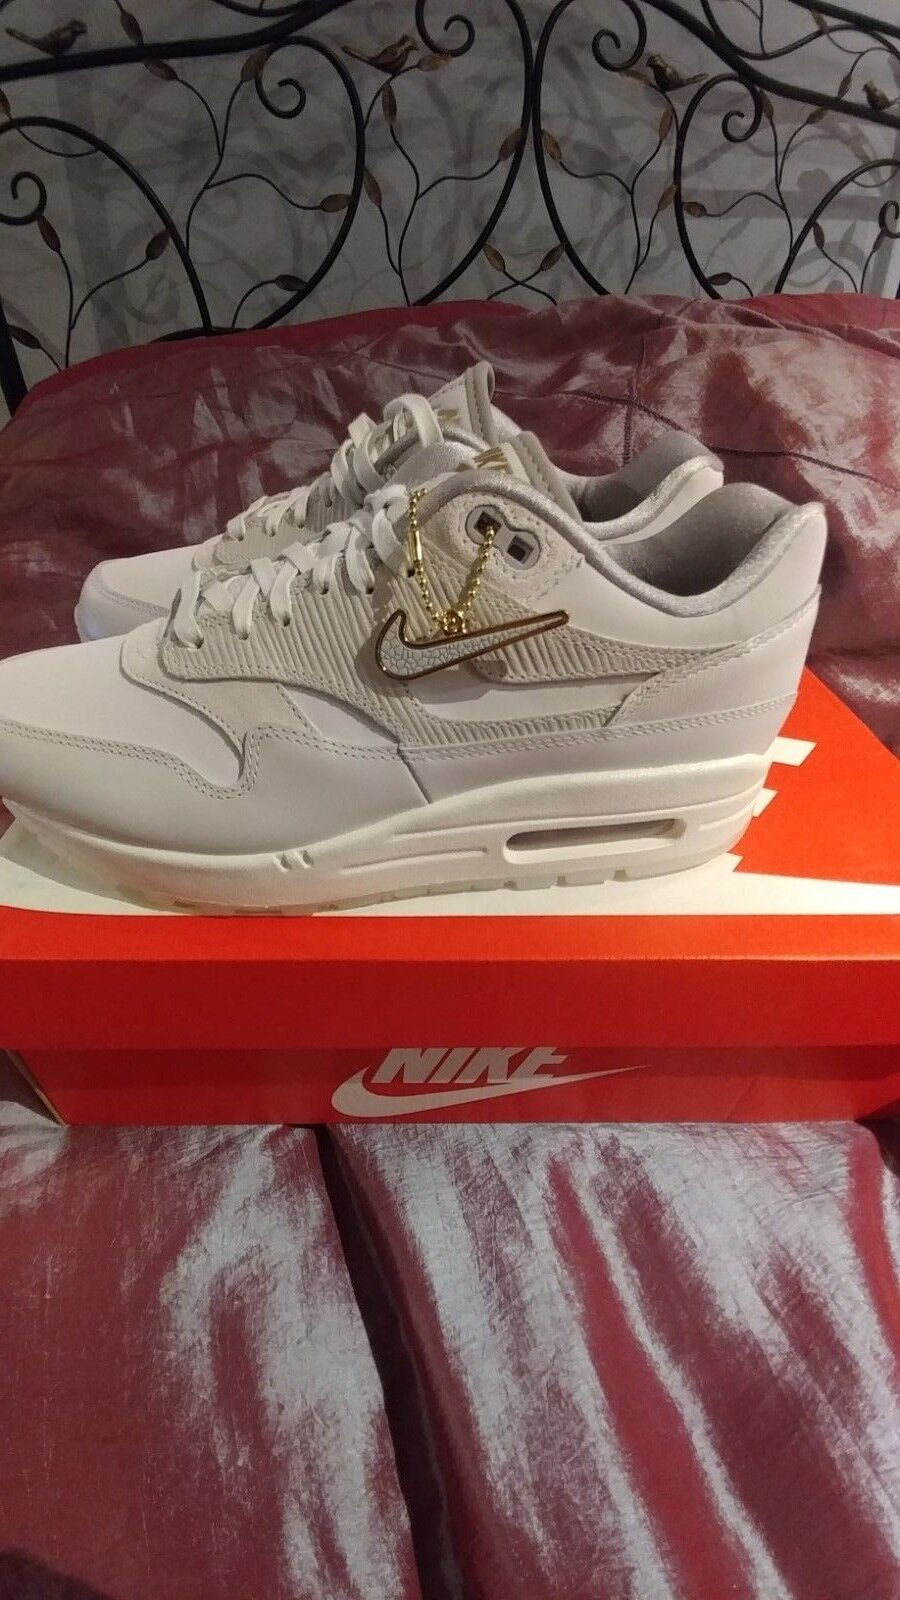 Nike Air Air Air Max 1 Premium Women Leather Sneakers Original  130.00 size 7.5 654800